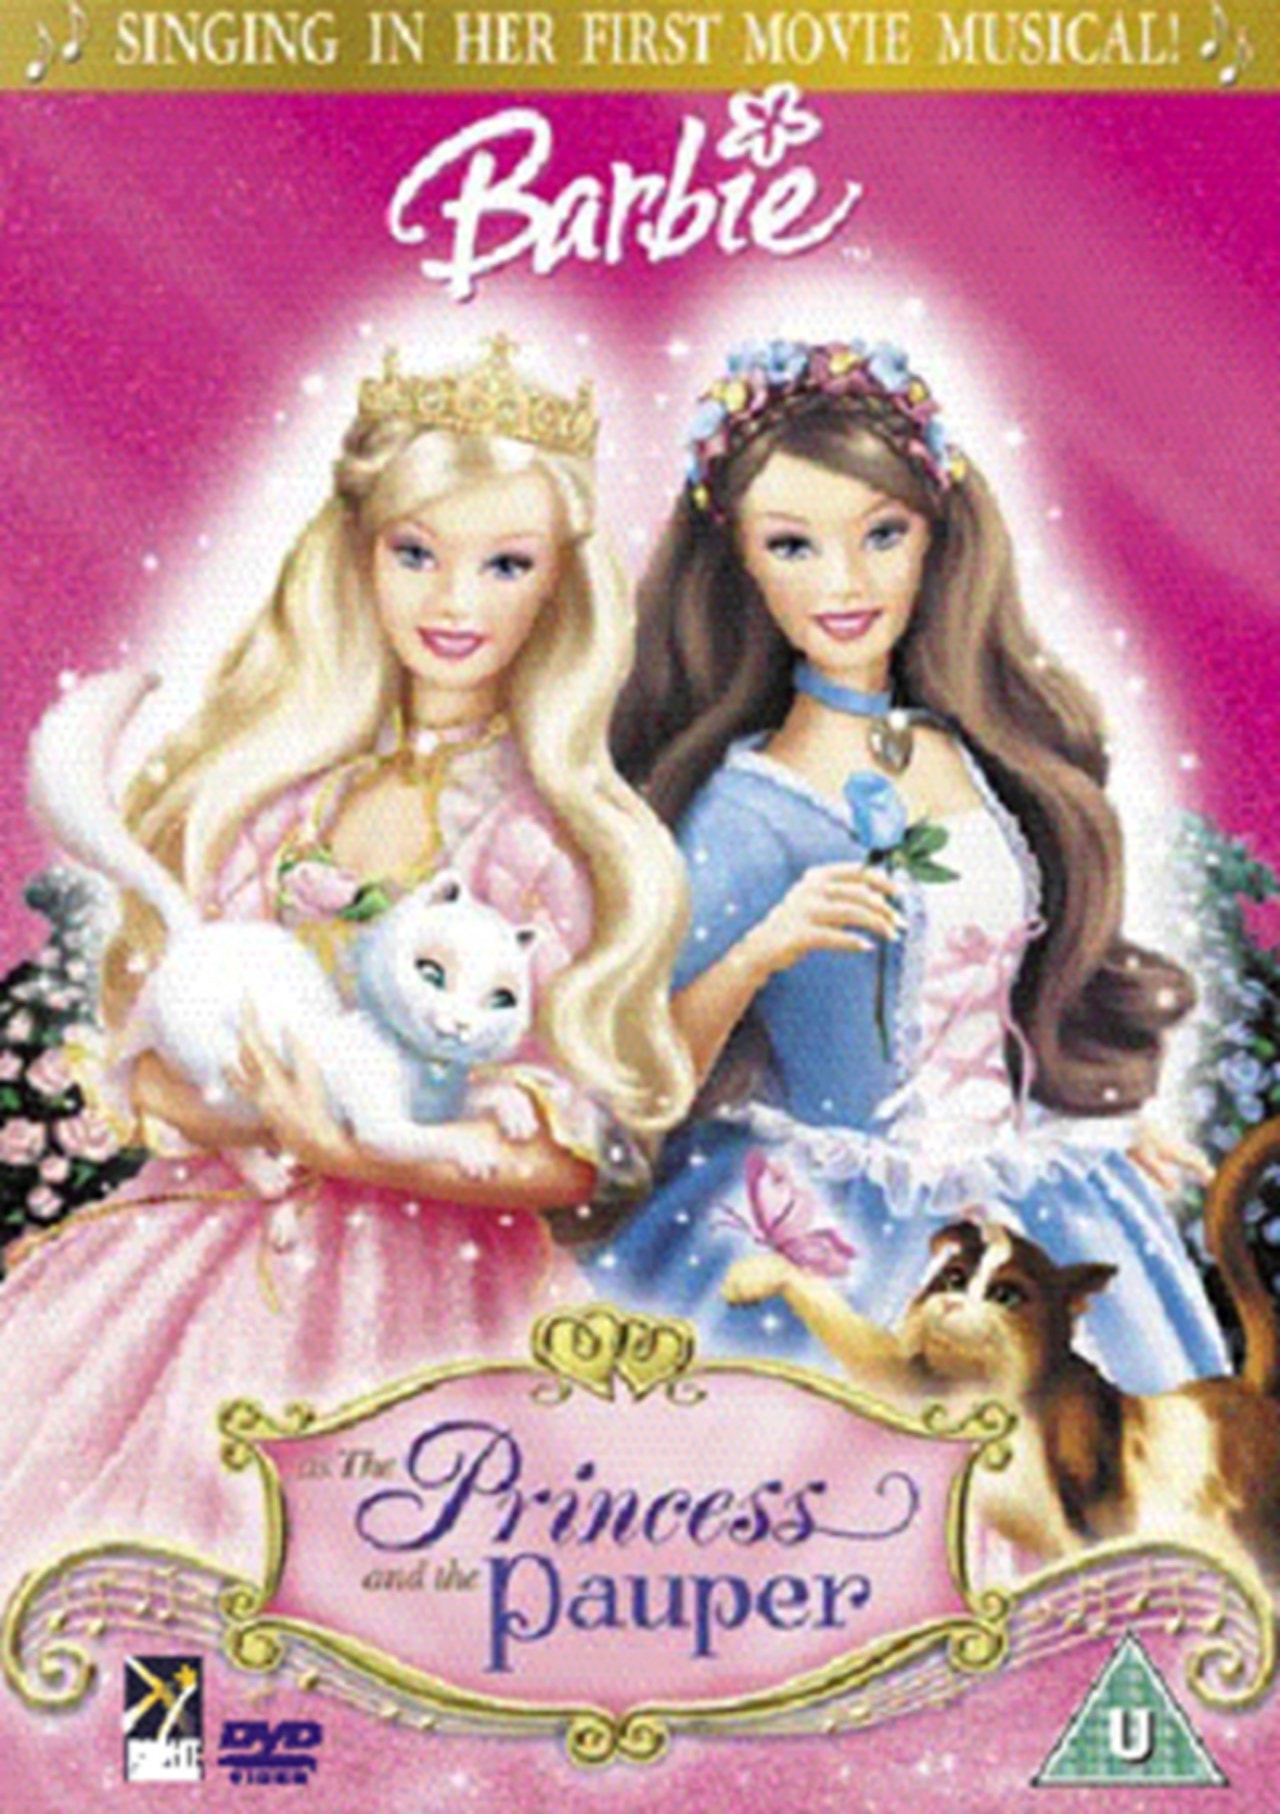 Barbie: The Princess and the Pauper - 1